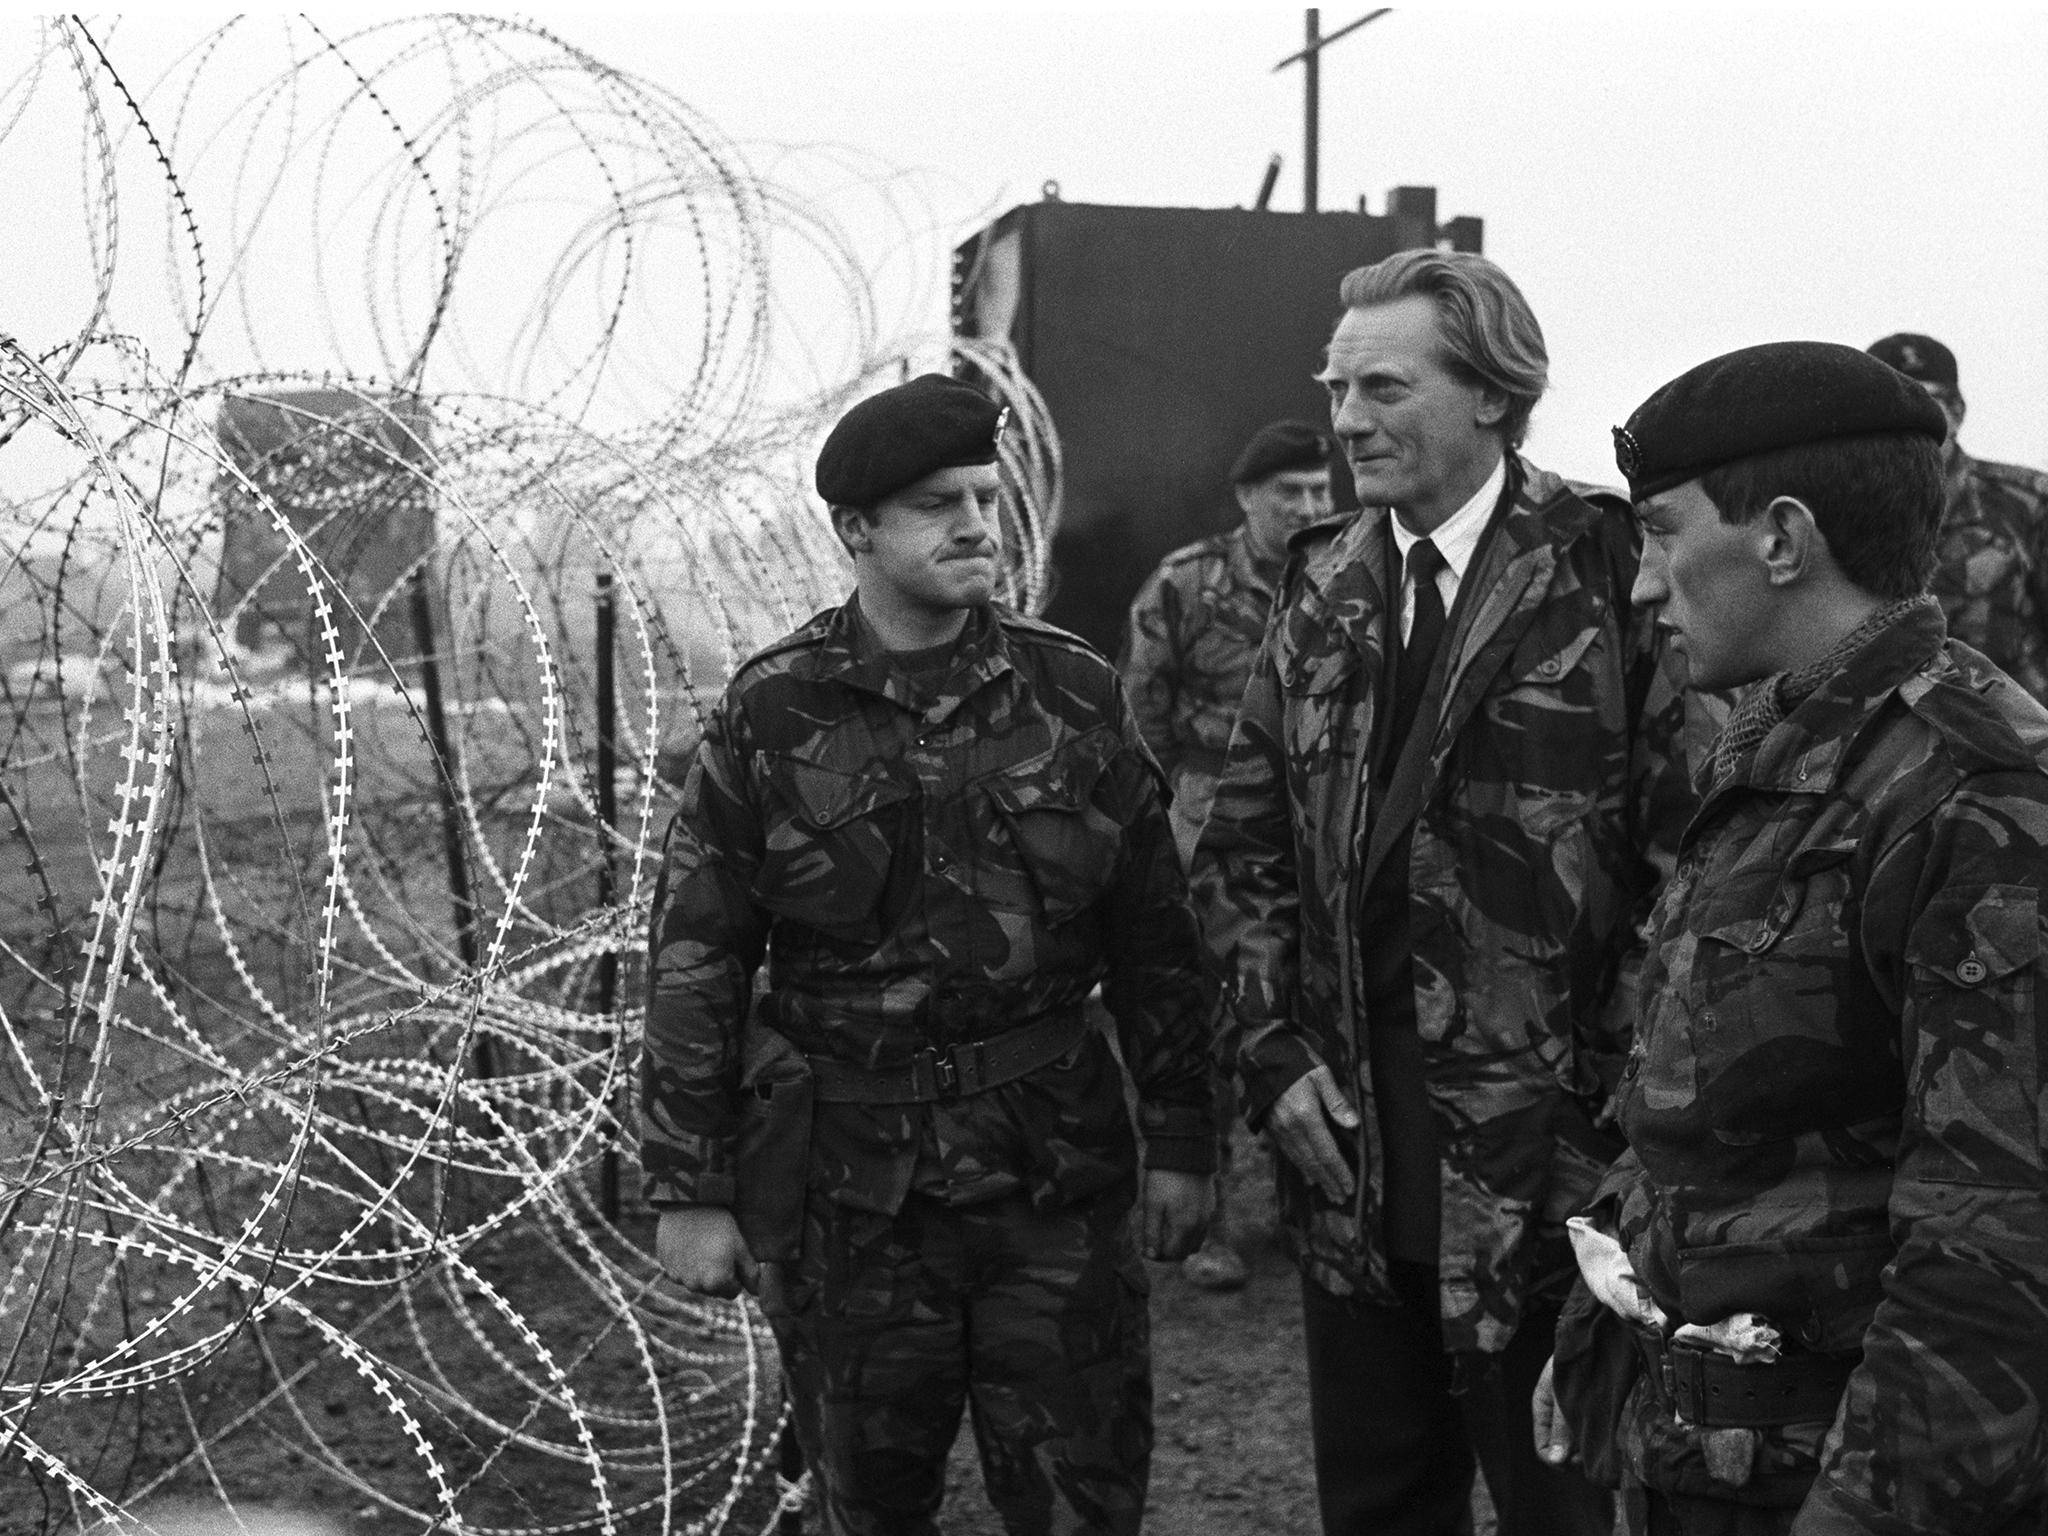 National Archives: MI5 monitored peace protesters at RAF bases in the 1980s | The Independentindependent_brand_ident_LOGOUntitled